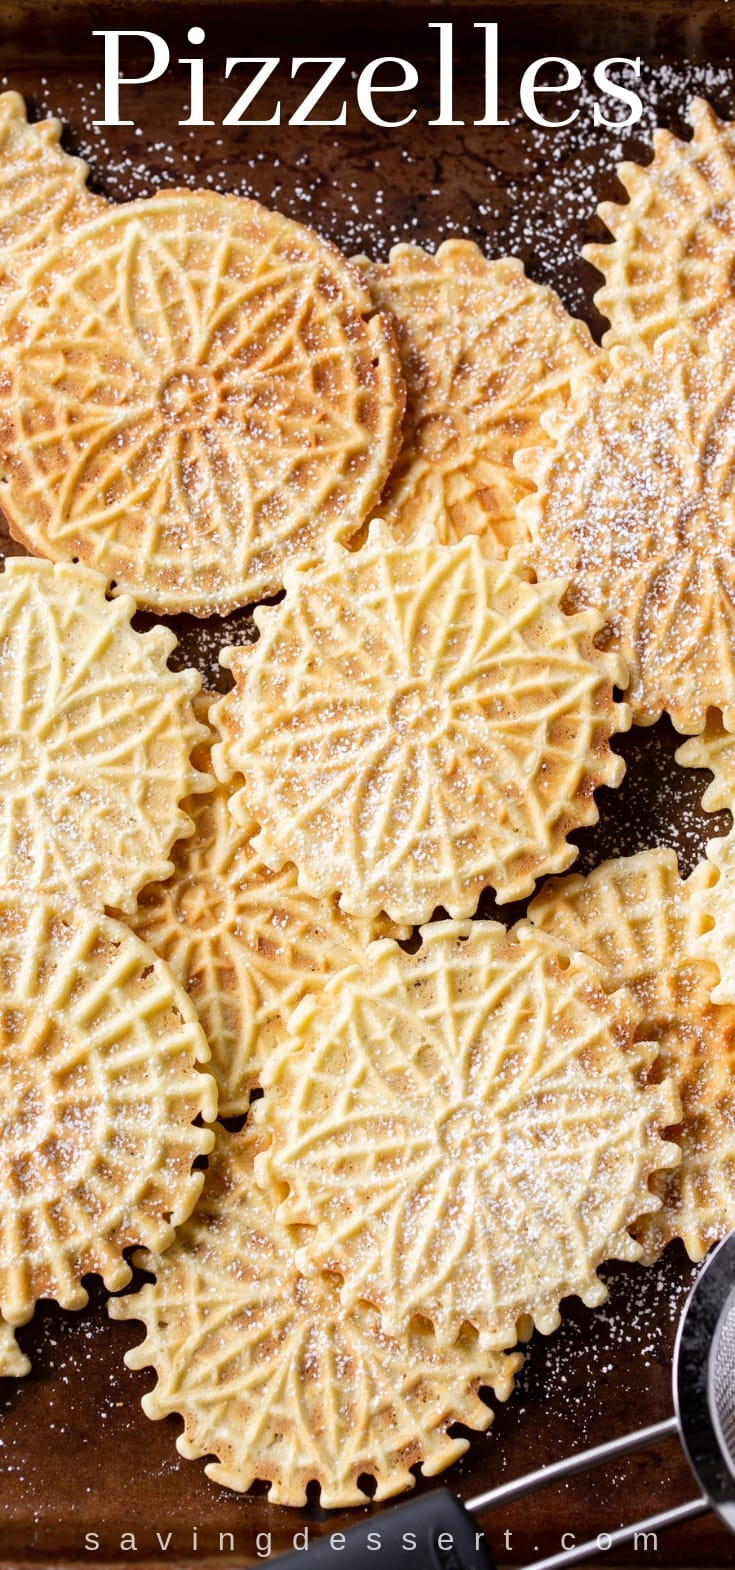 A baking tray covered with pizzelle cookies dusted with powdered sugar